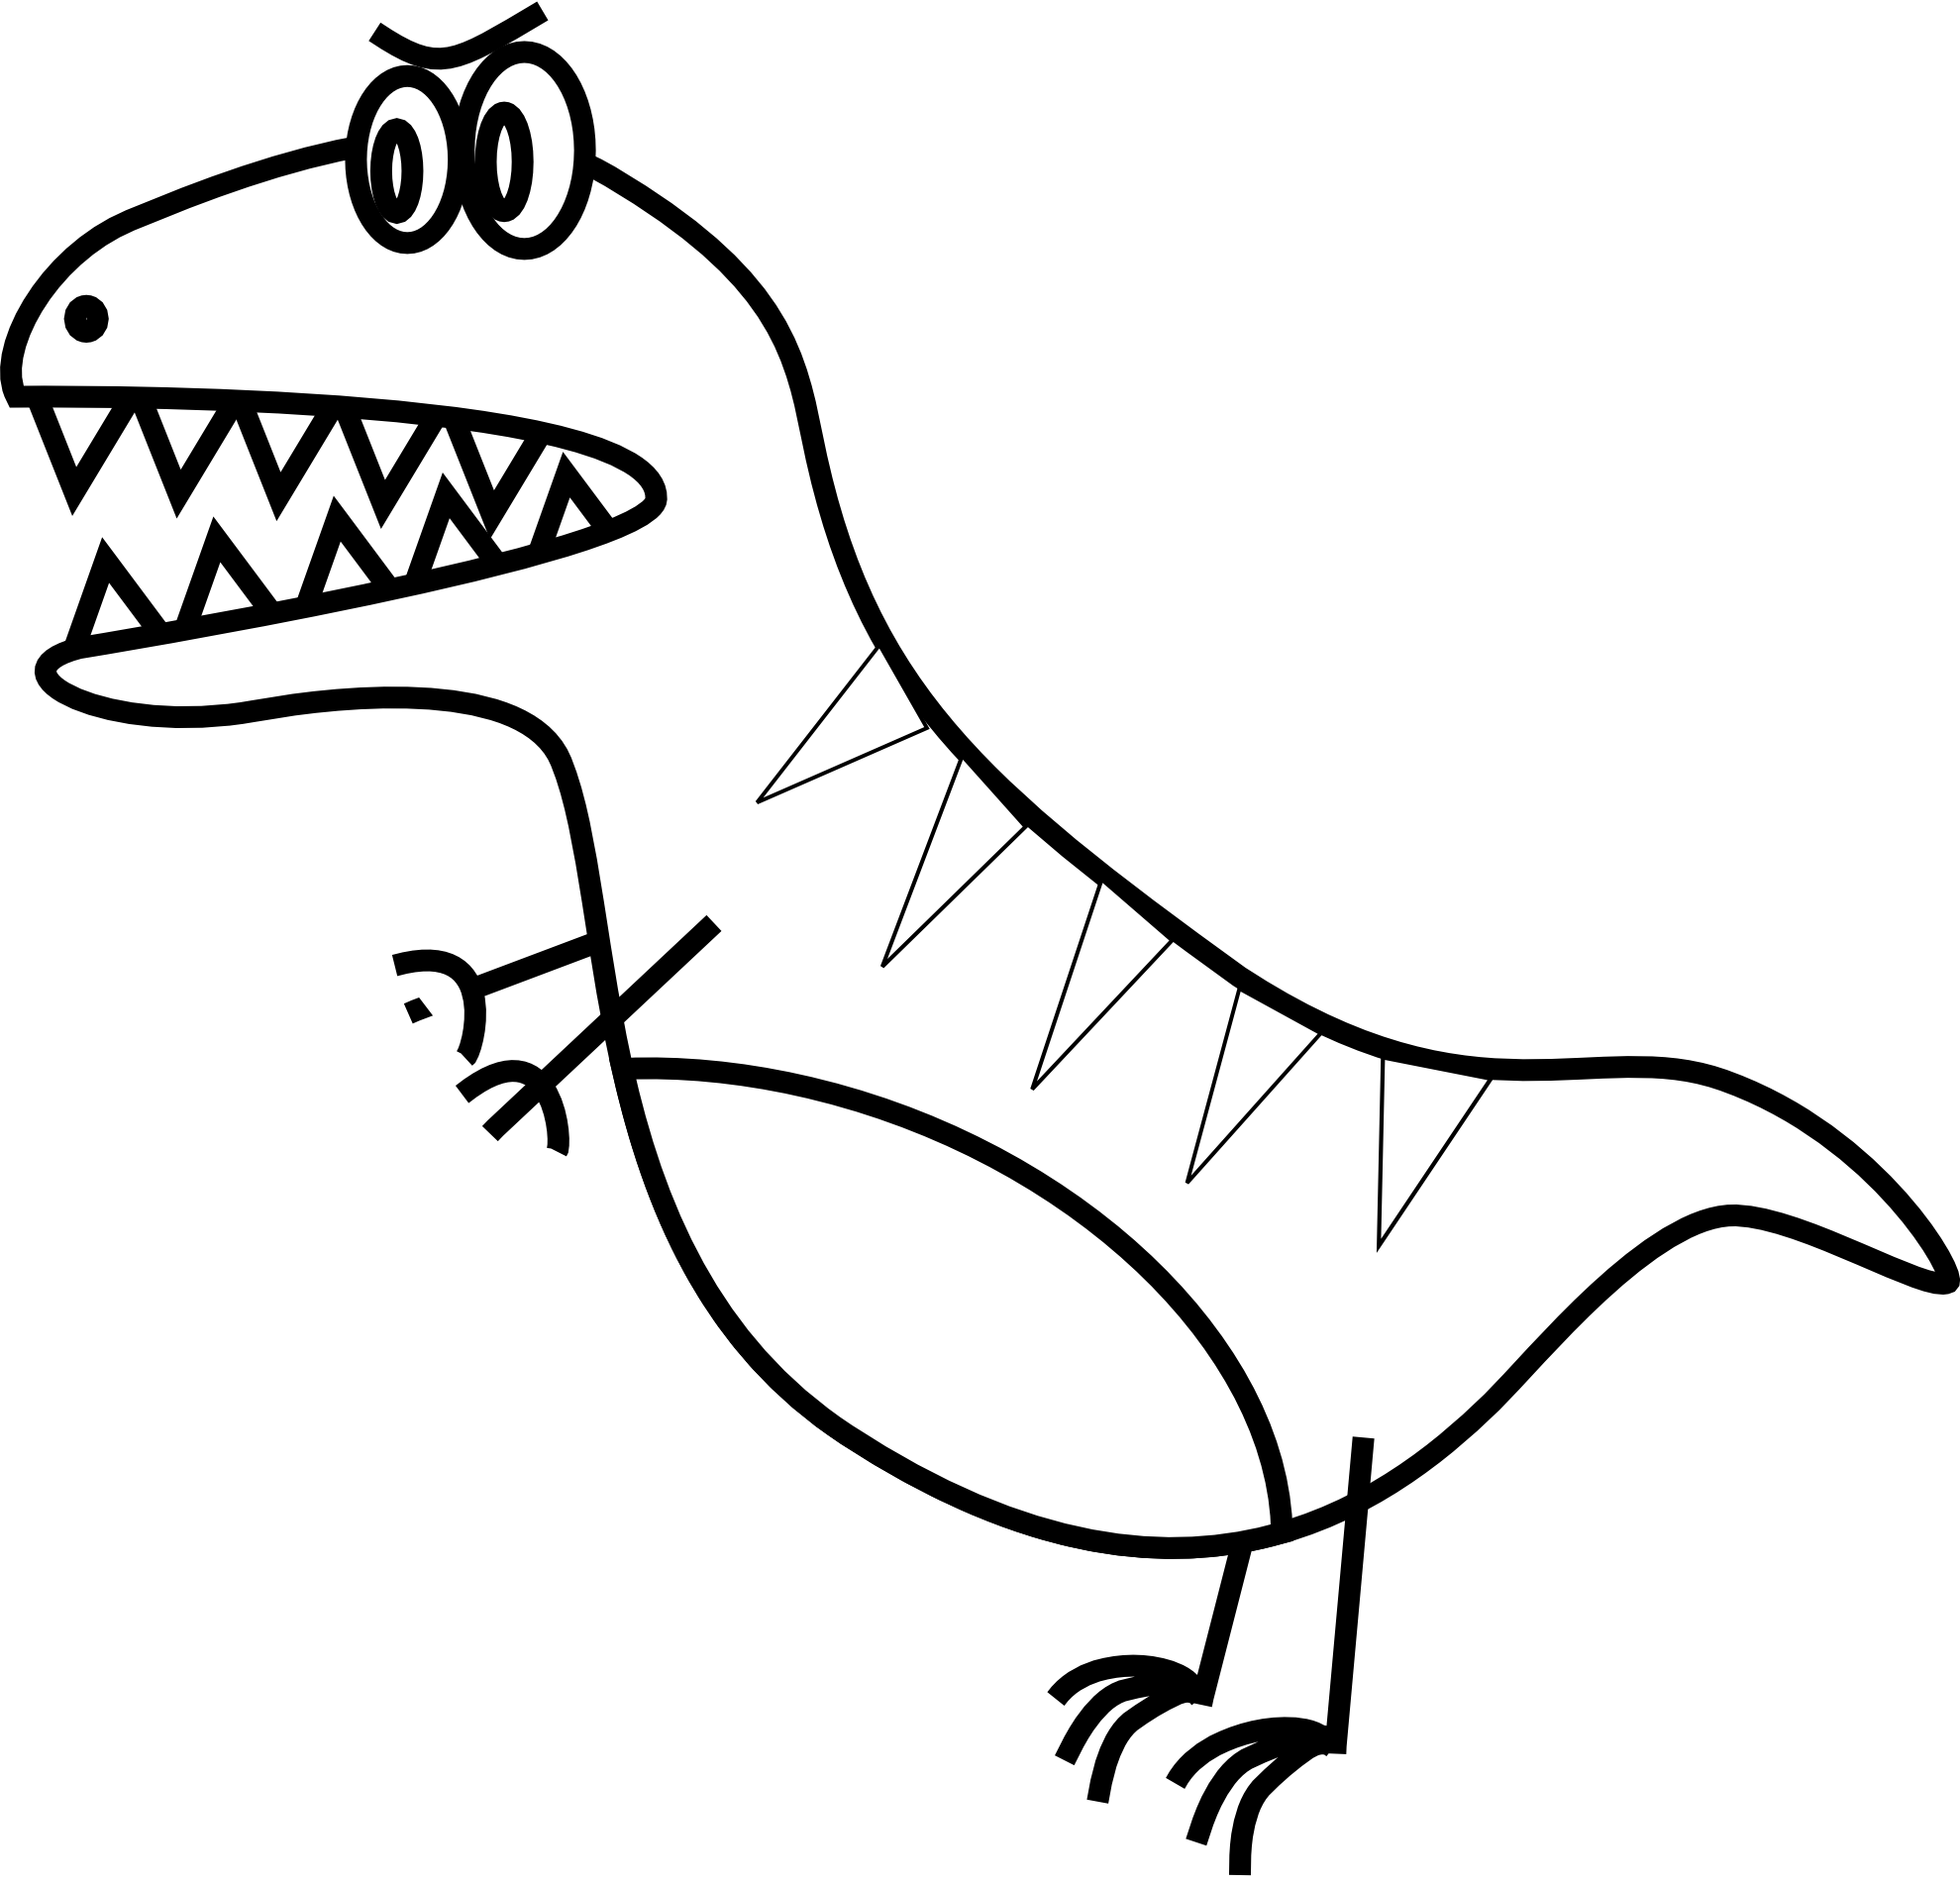 Dinosaur Clipart Black And White | Clipart Panda - Free ...